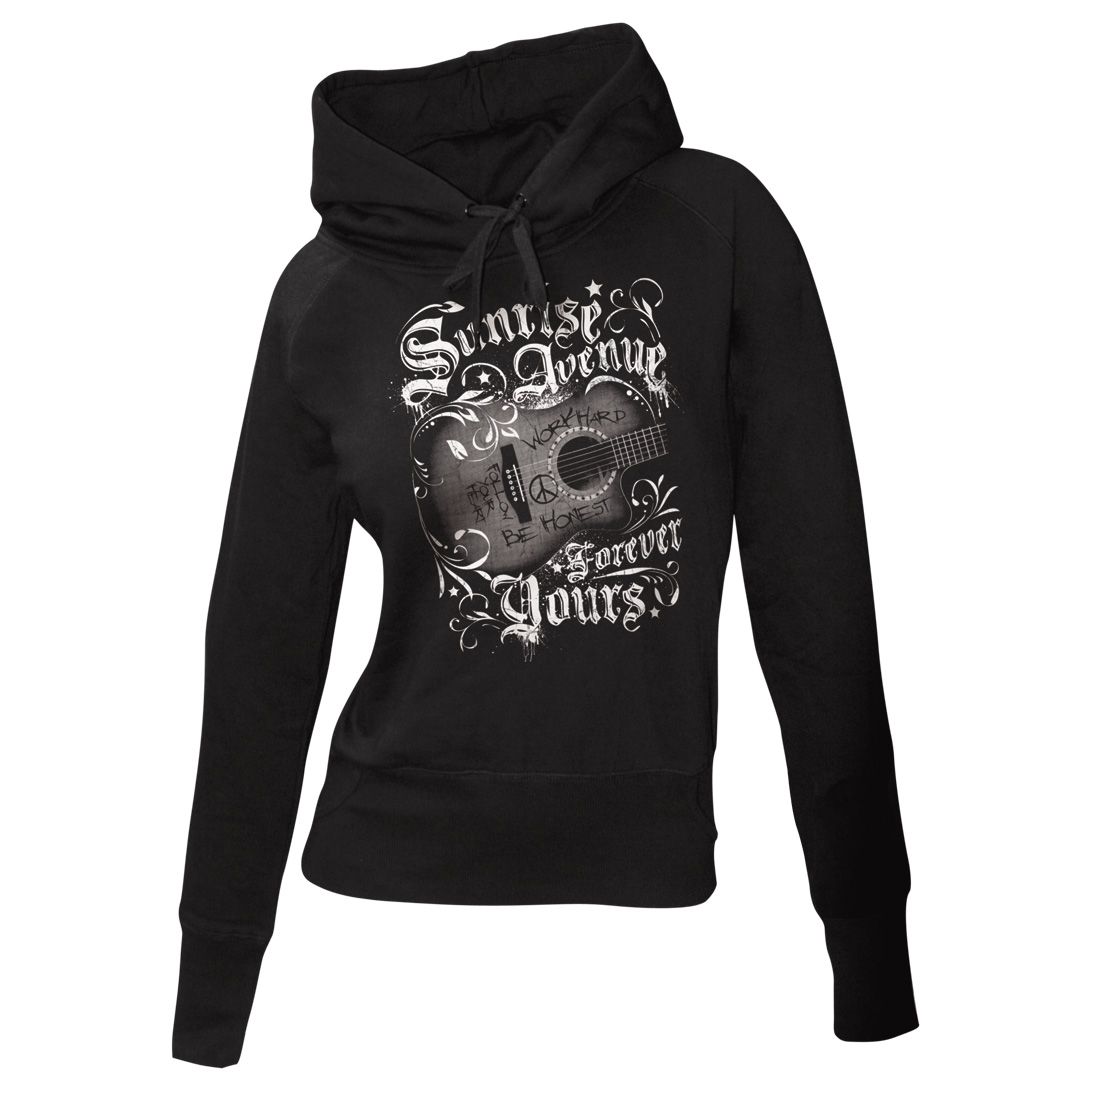 √Forever Yours von Sunrise Avenue - Girlie hooded sweater jetzt im Sunrise Avenue Shop